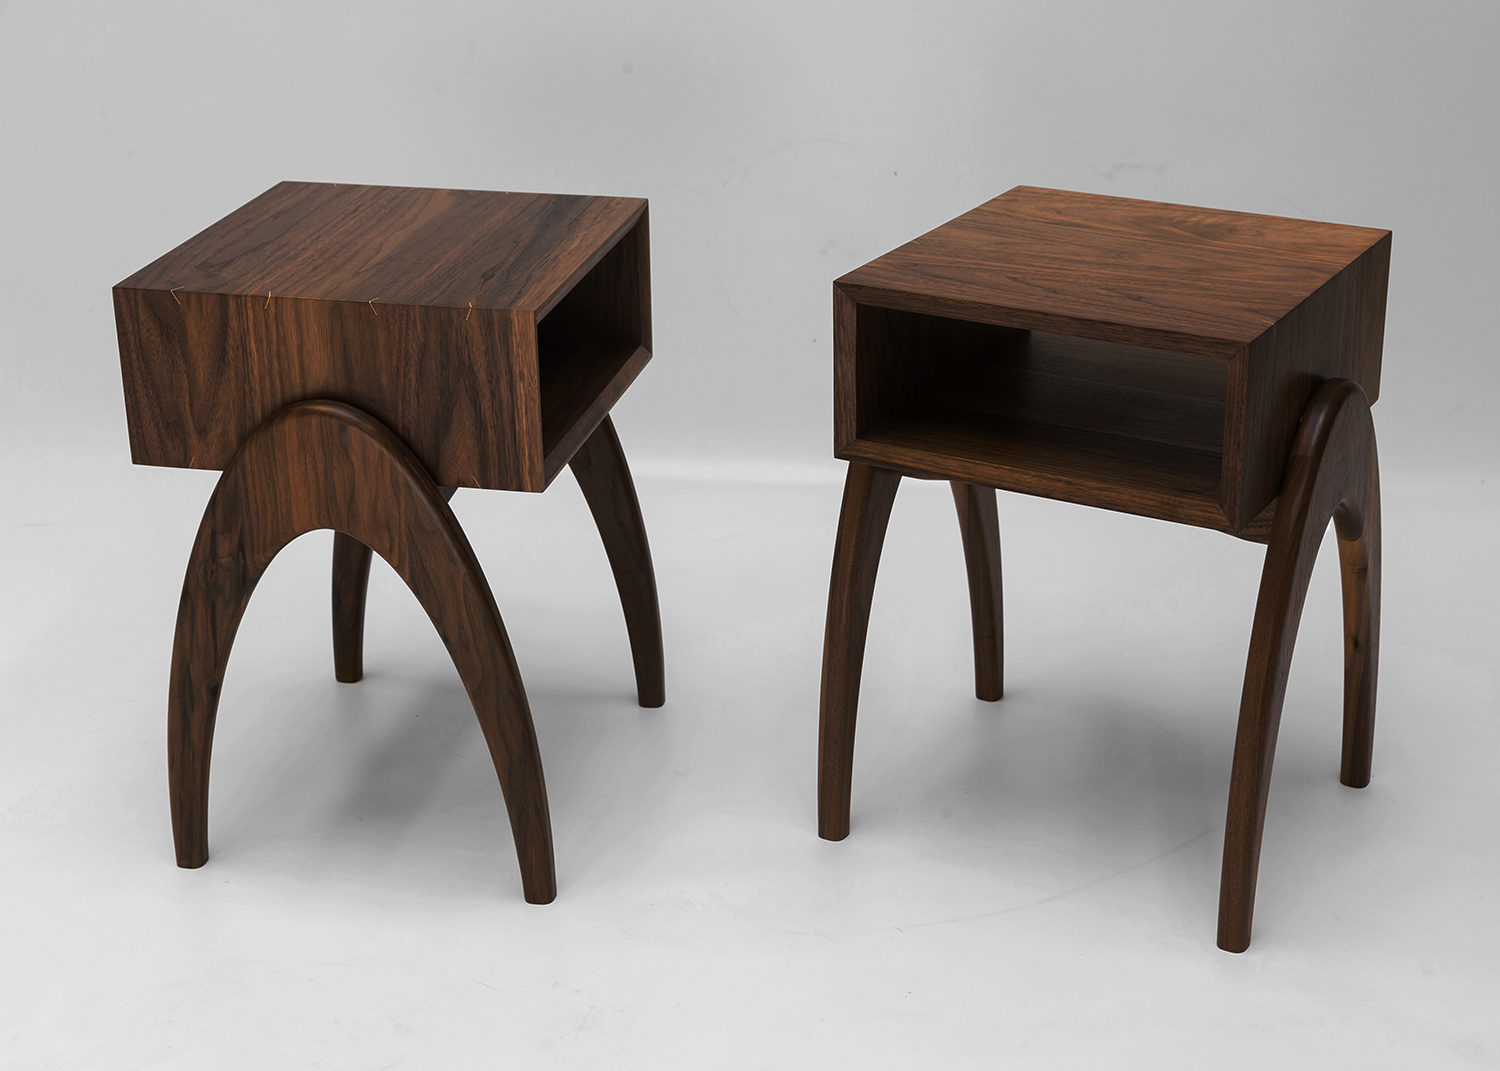 Retrospect sidetable by Alan Flannery Furniture Design low2.jpg